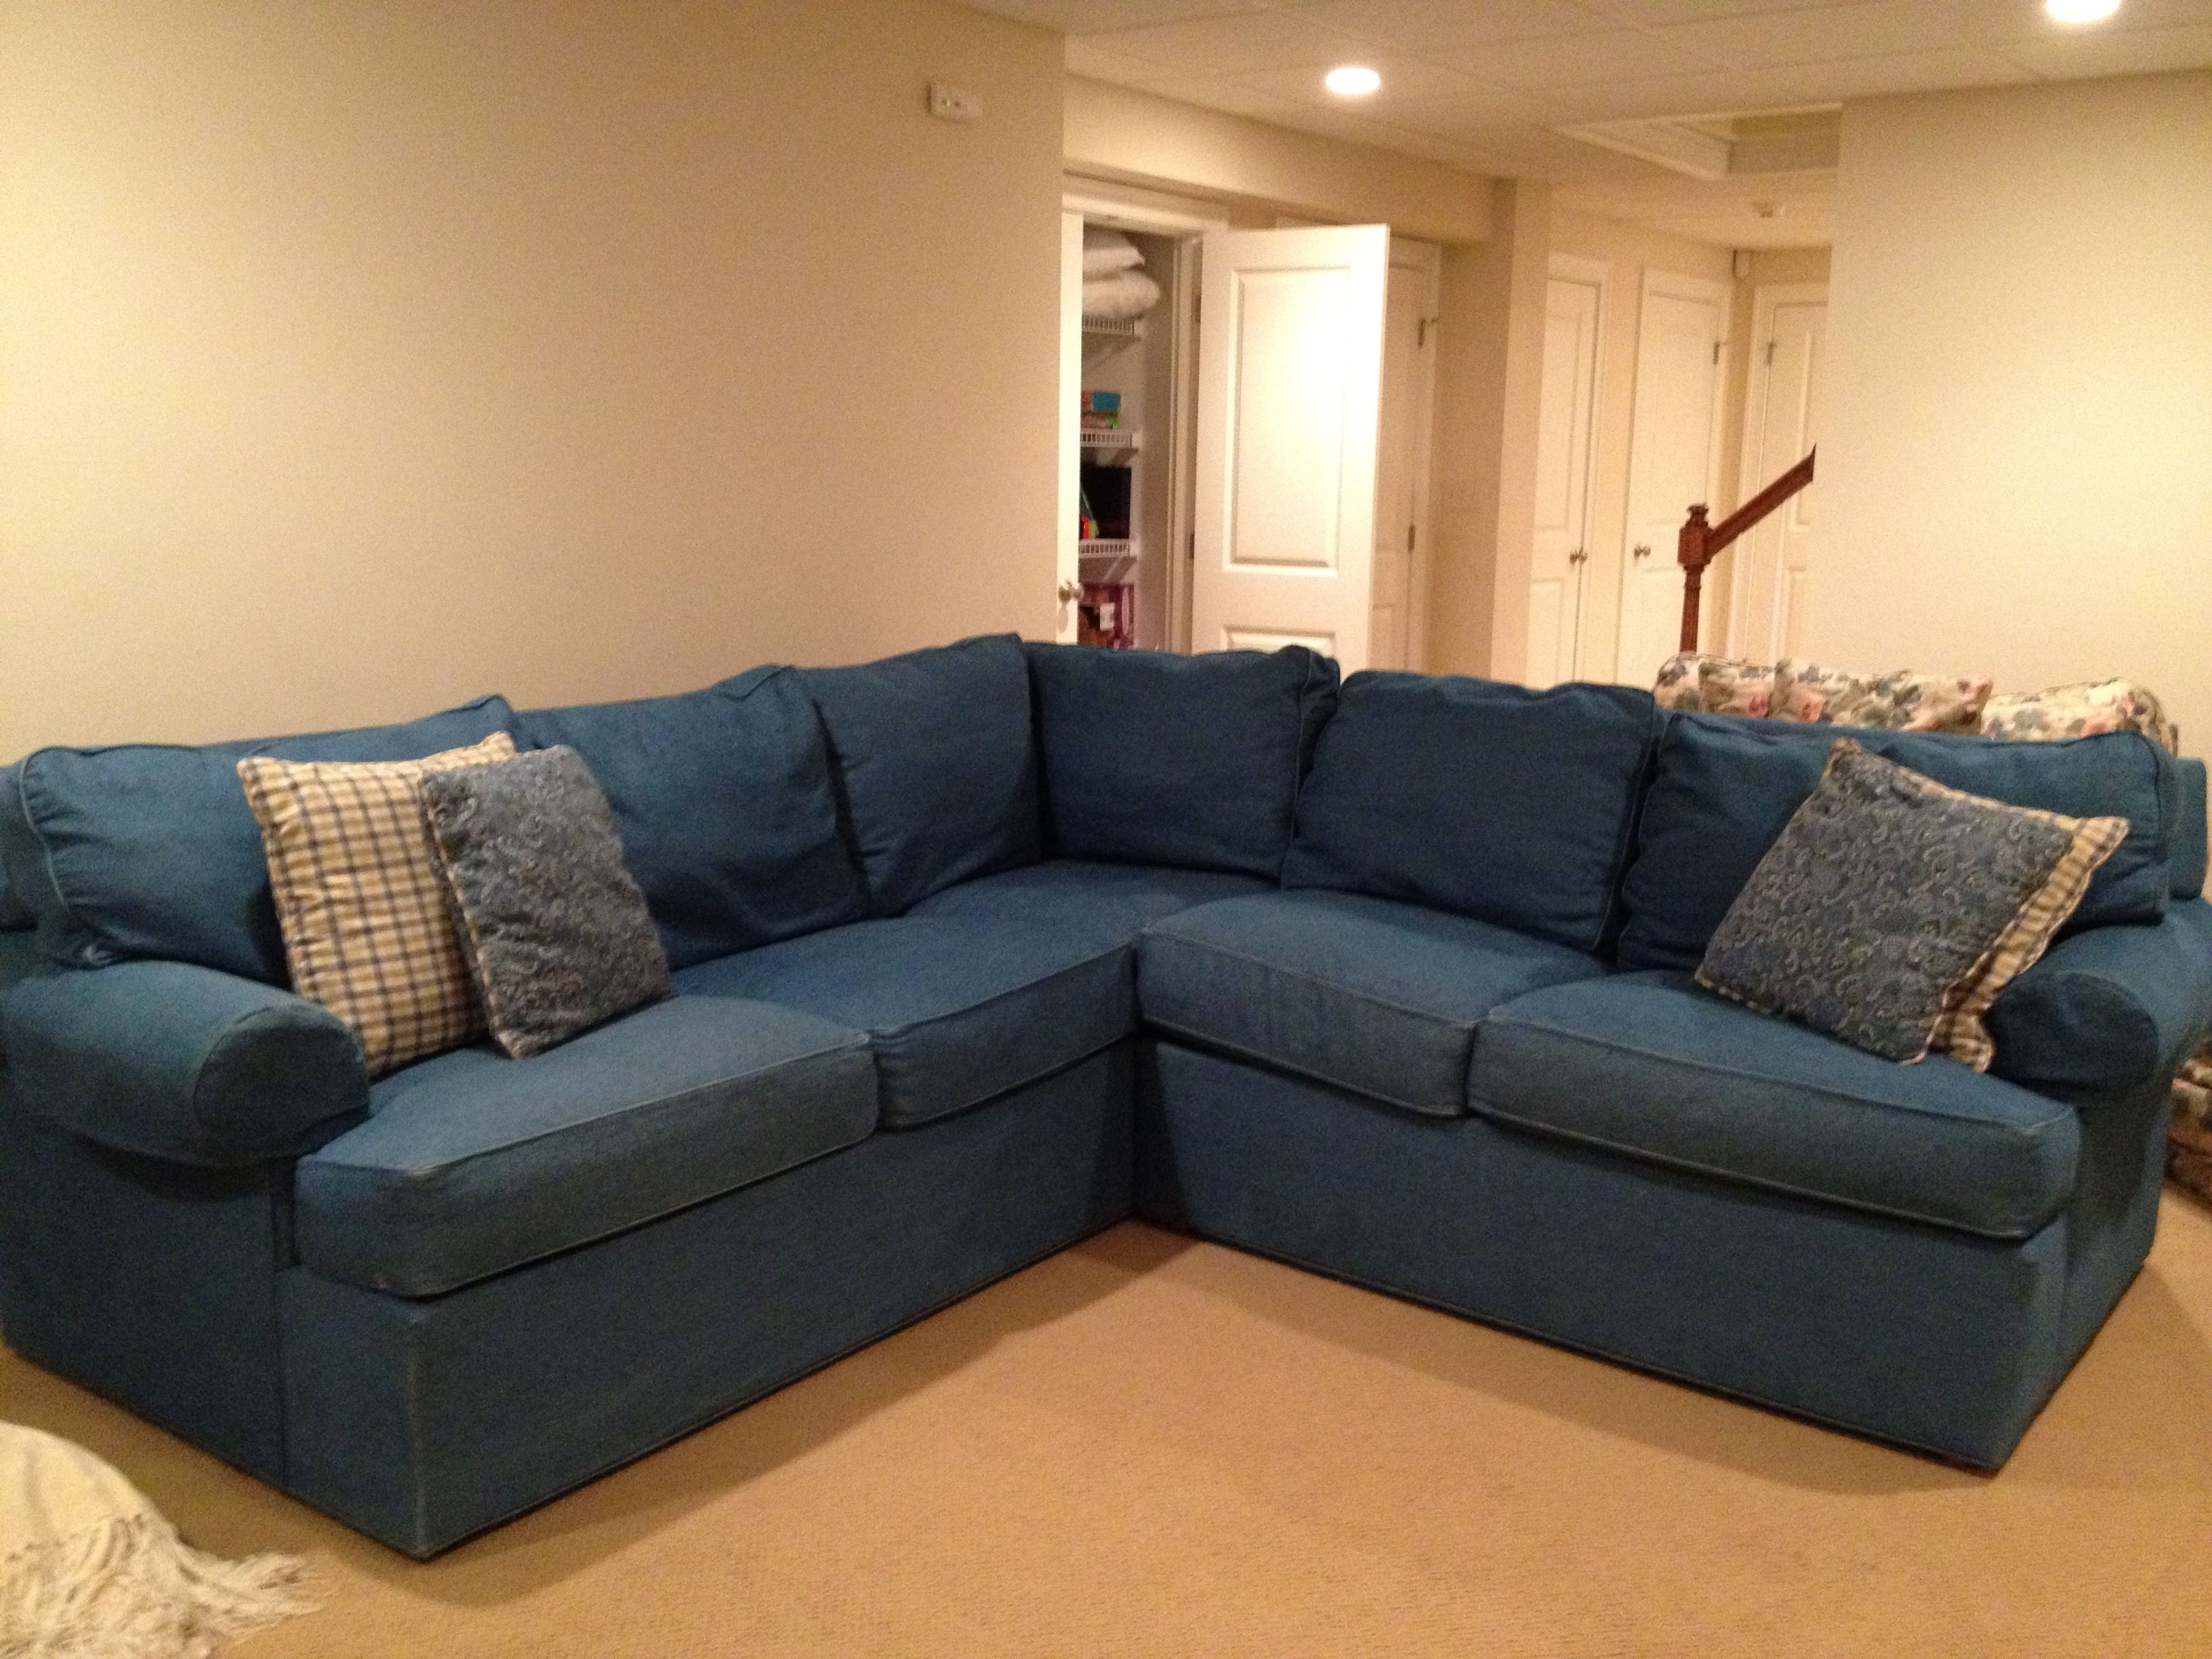 Exciting Denim Sectional Sofa Design For Living Room